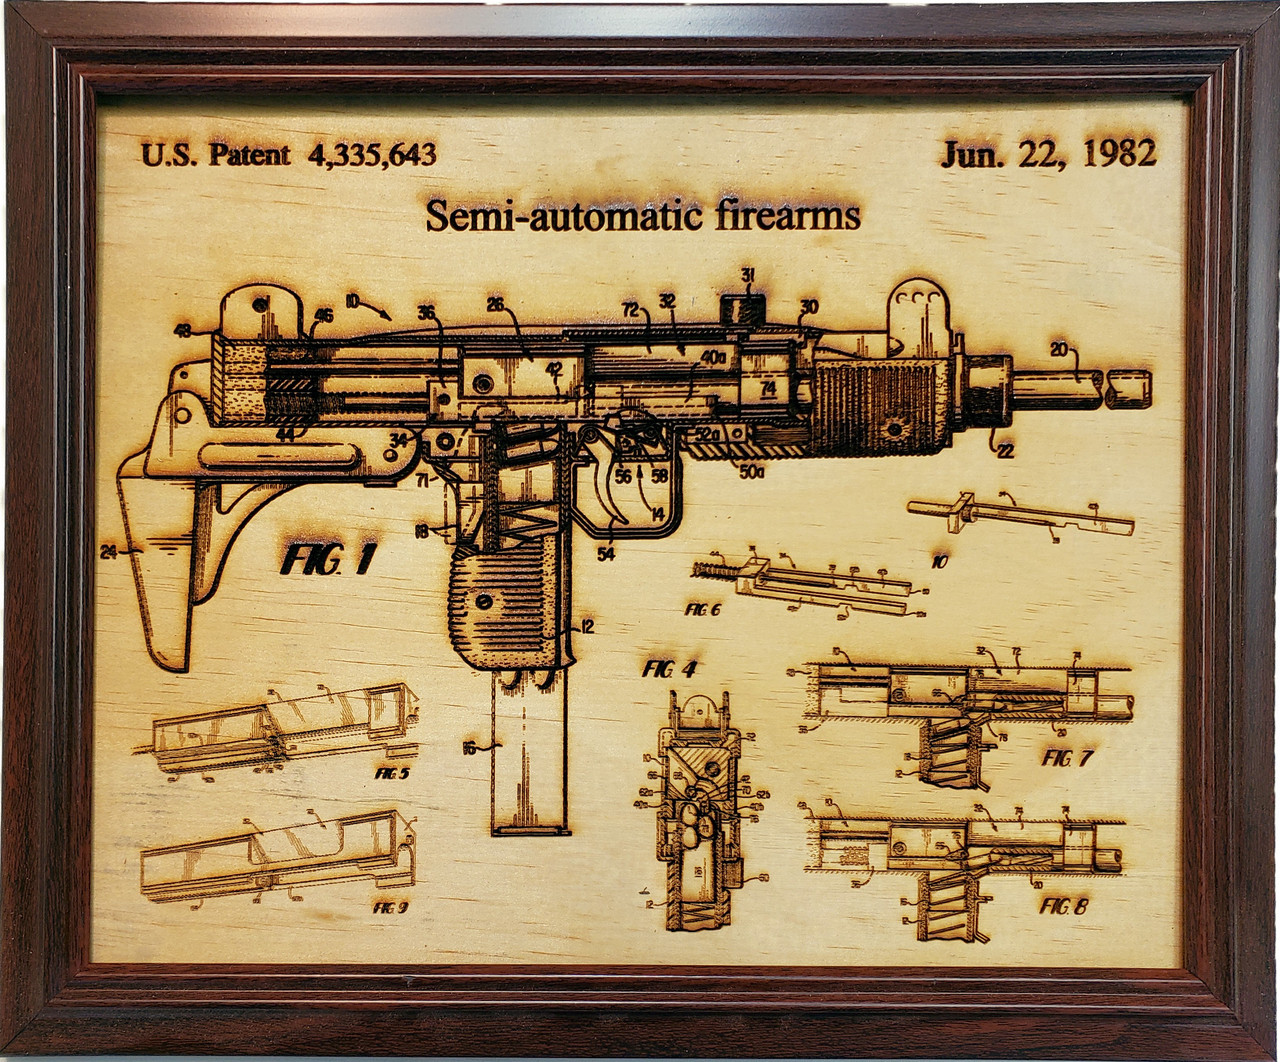 Framed laser art details of the UZI patent #4,335,643